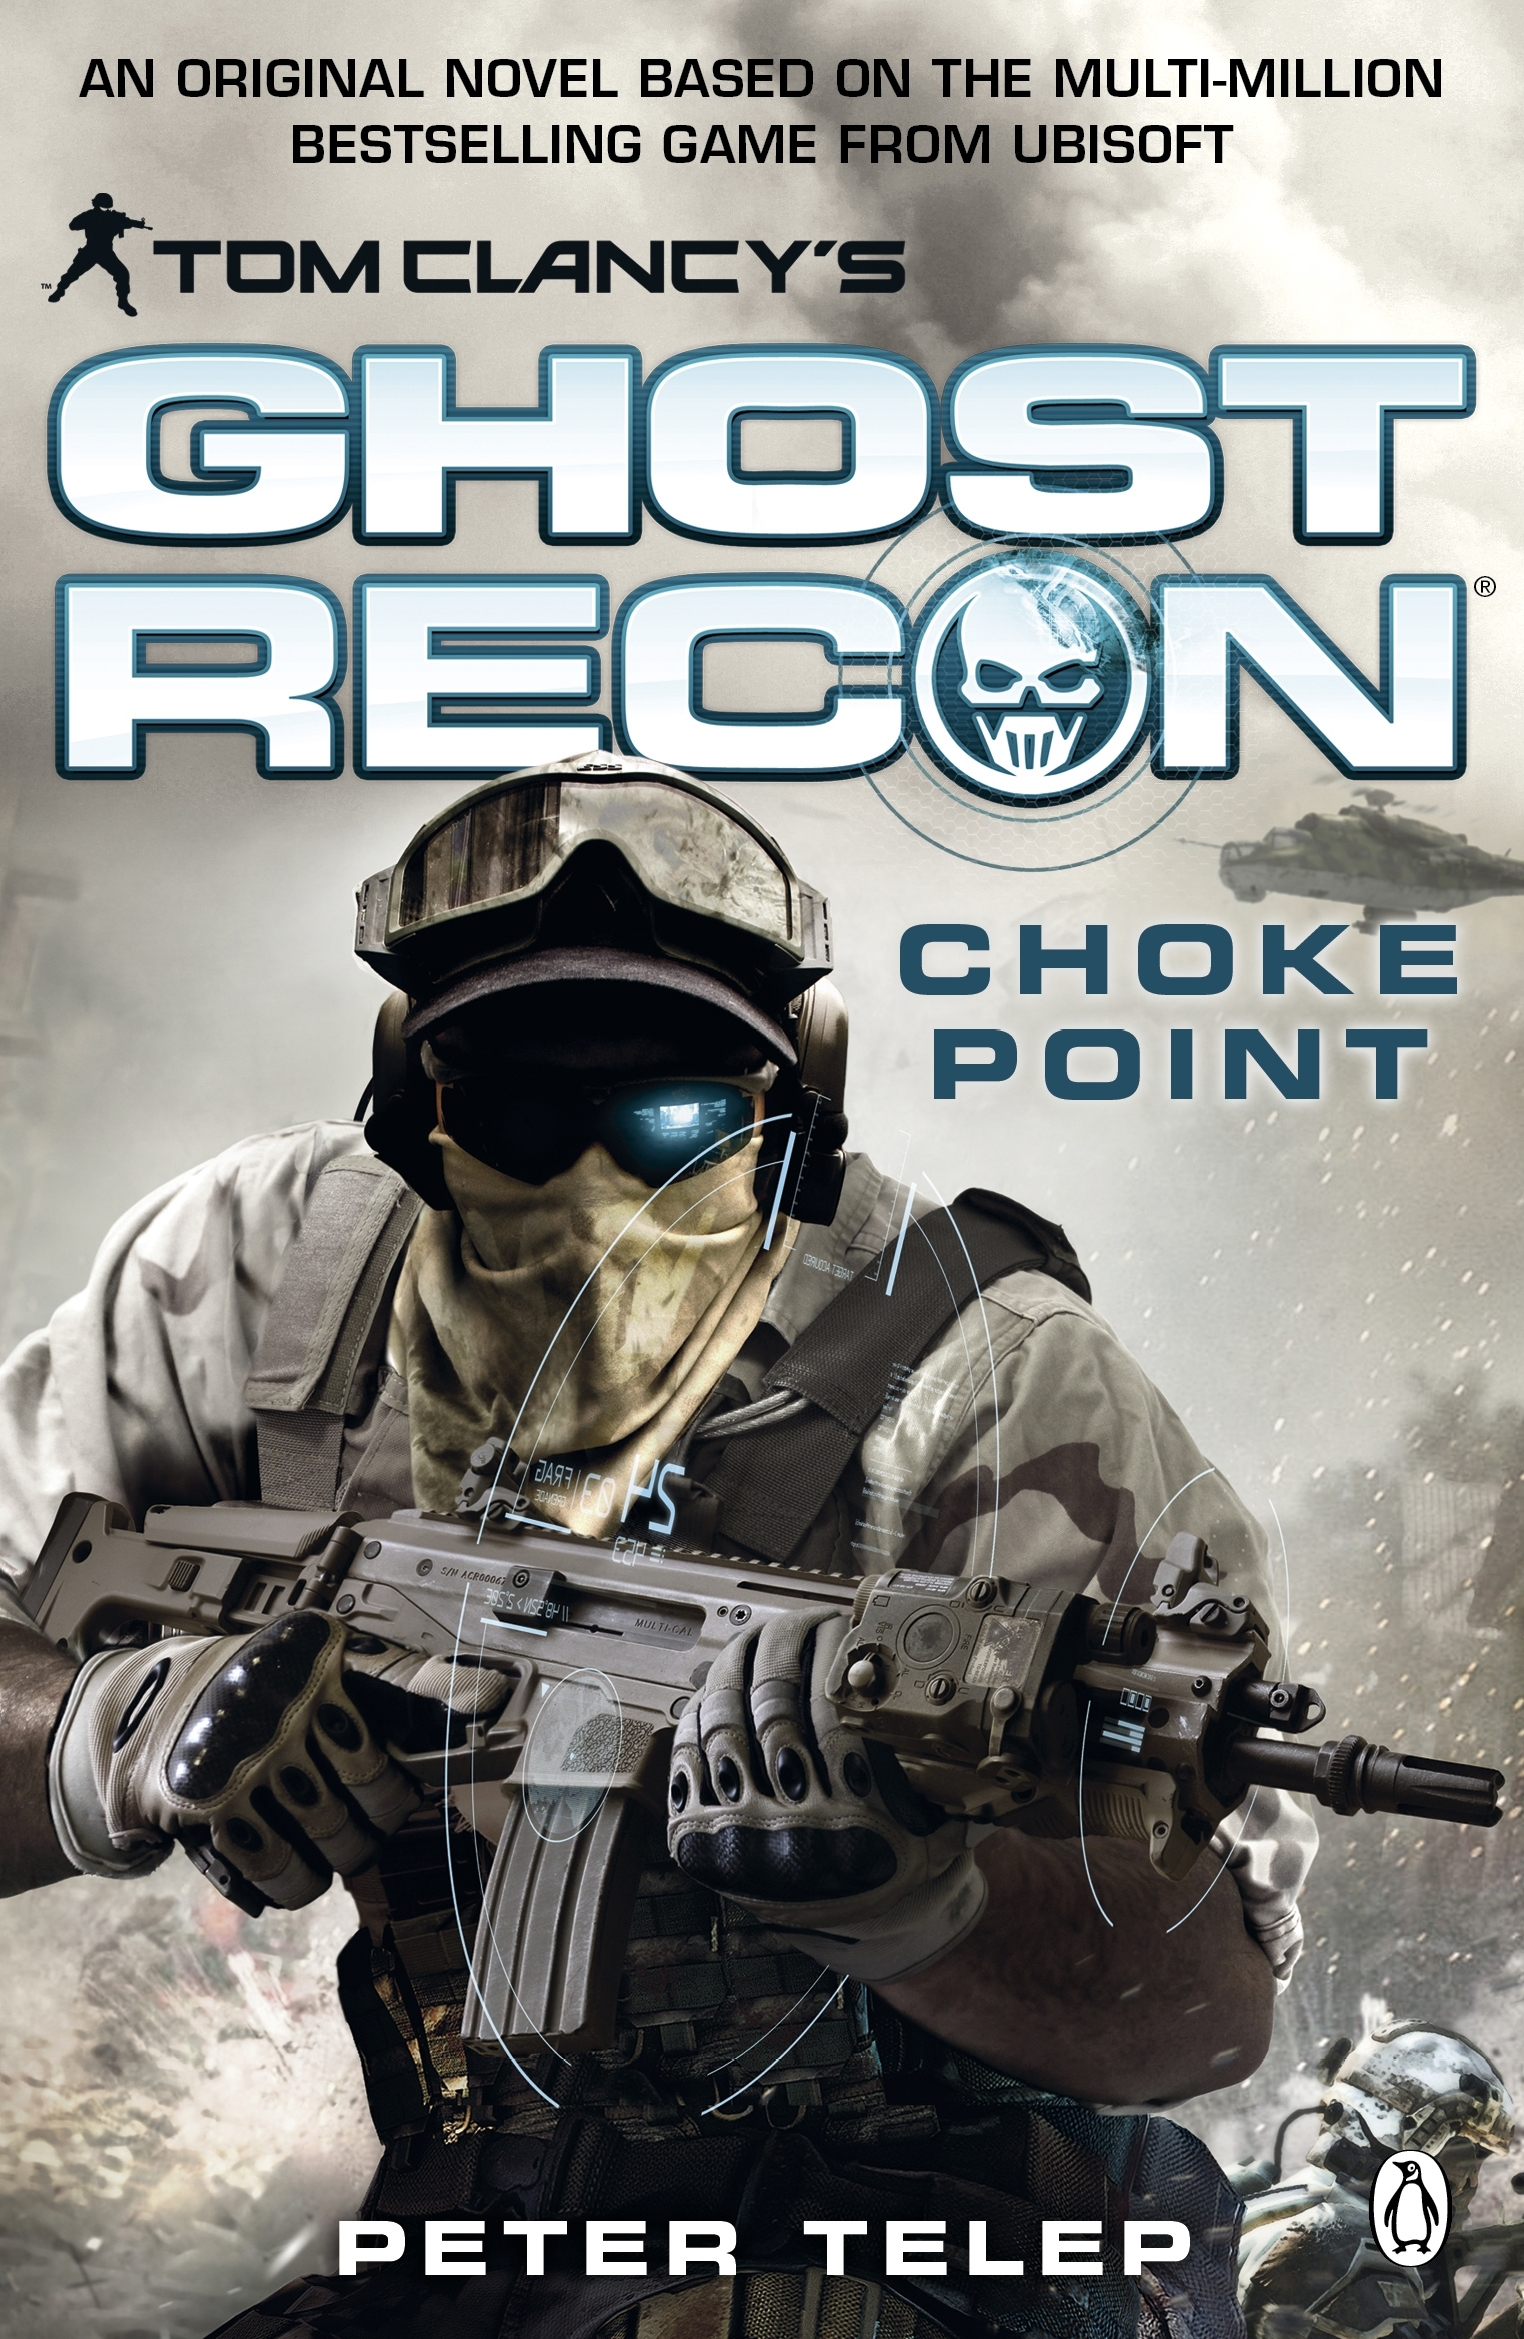 Book Cover:  Tom Clancy's Ghost Recon: Choke Point